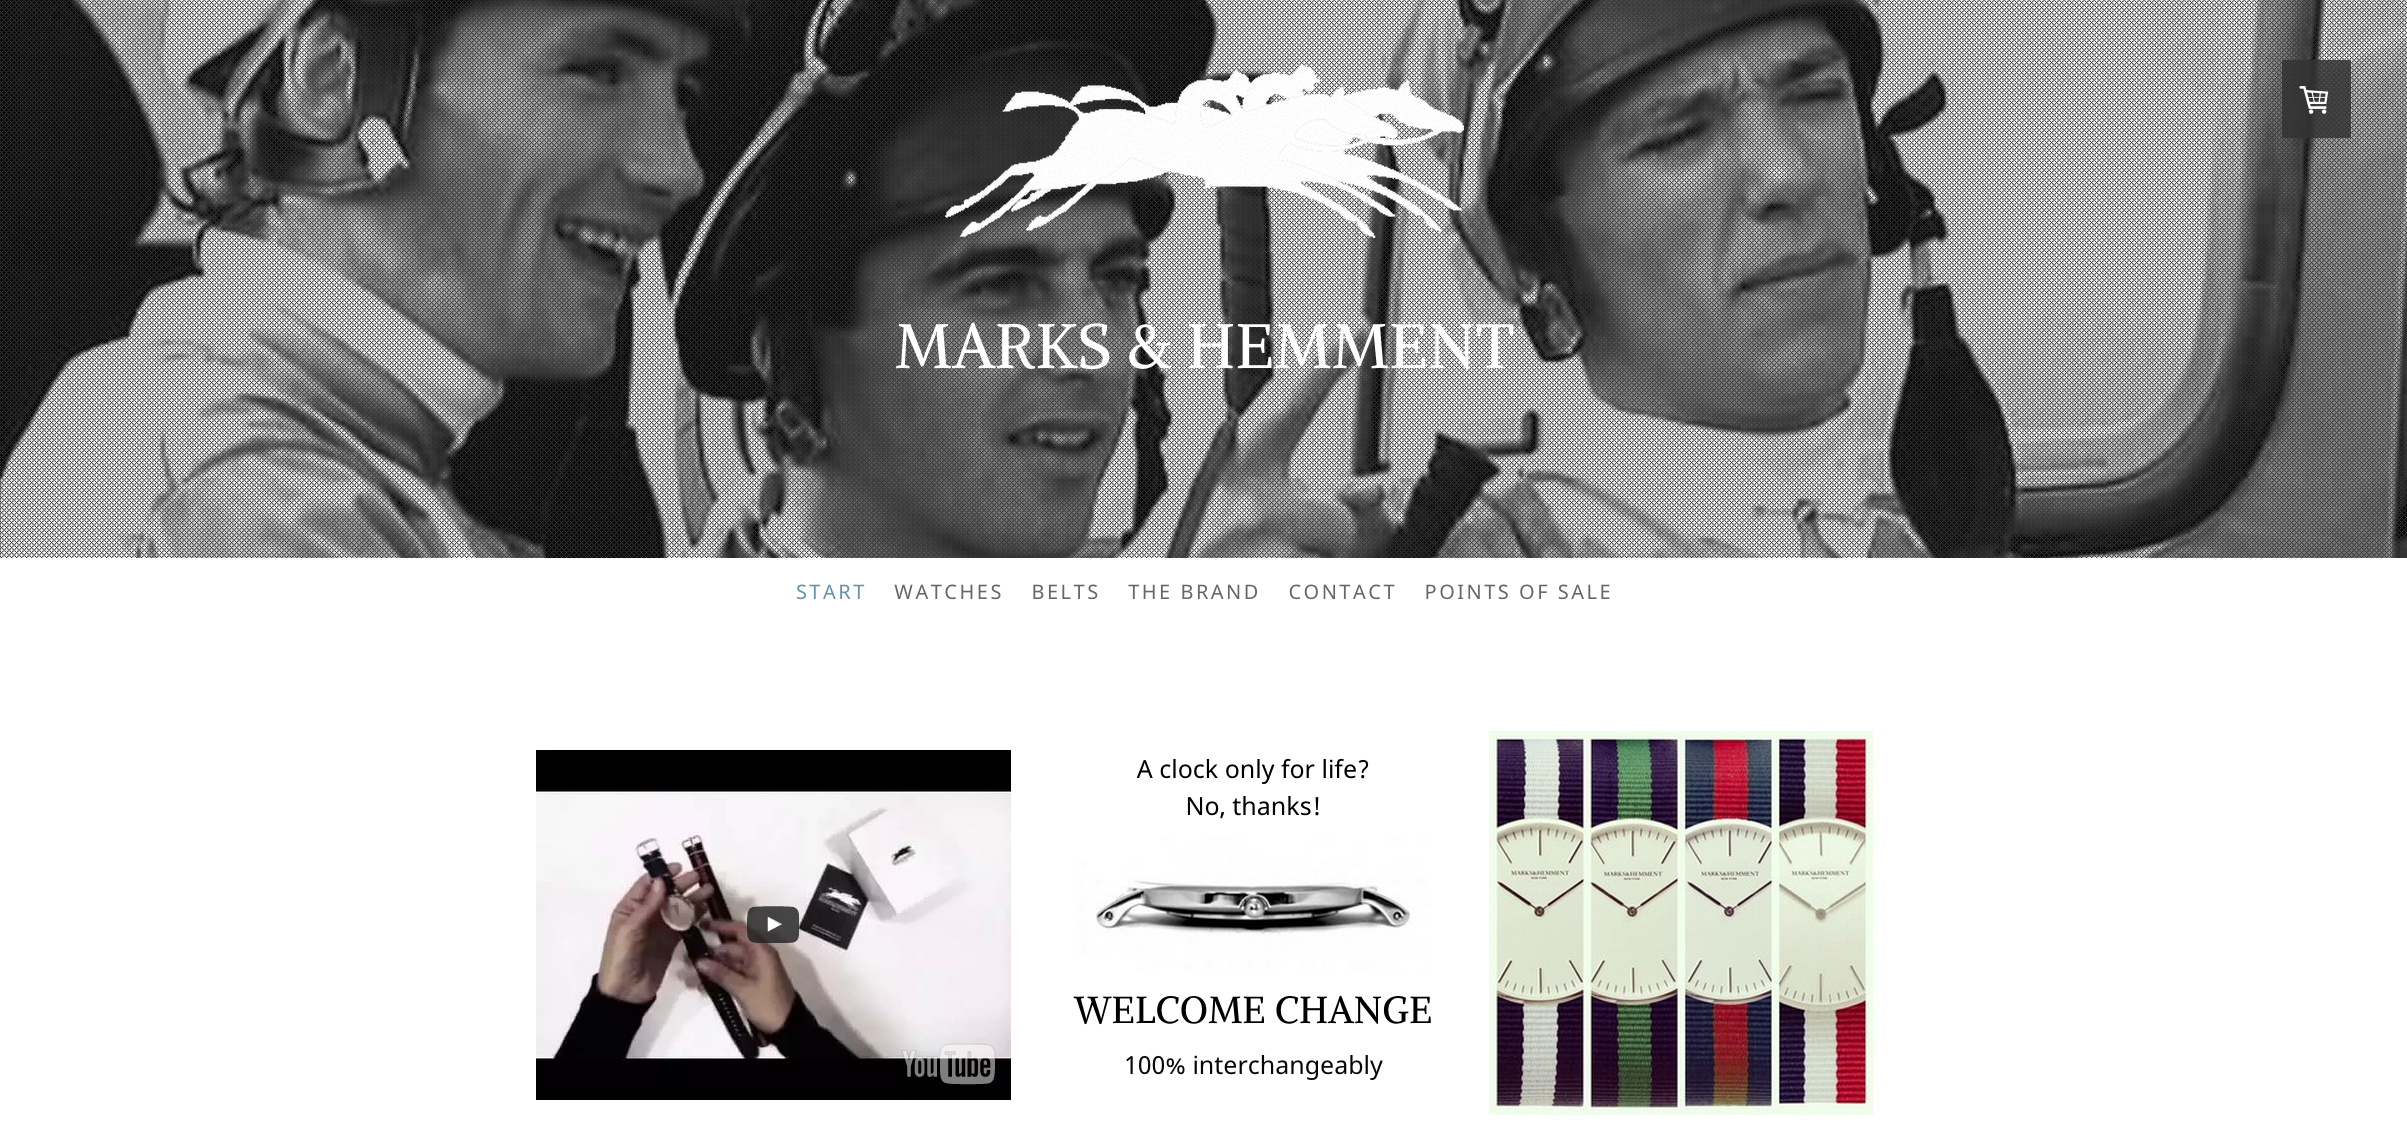 This is an example of a website created with the Zurich template